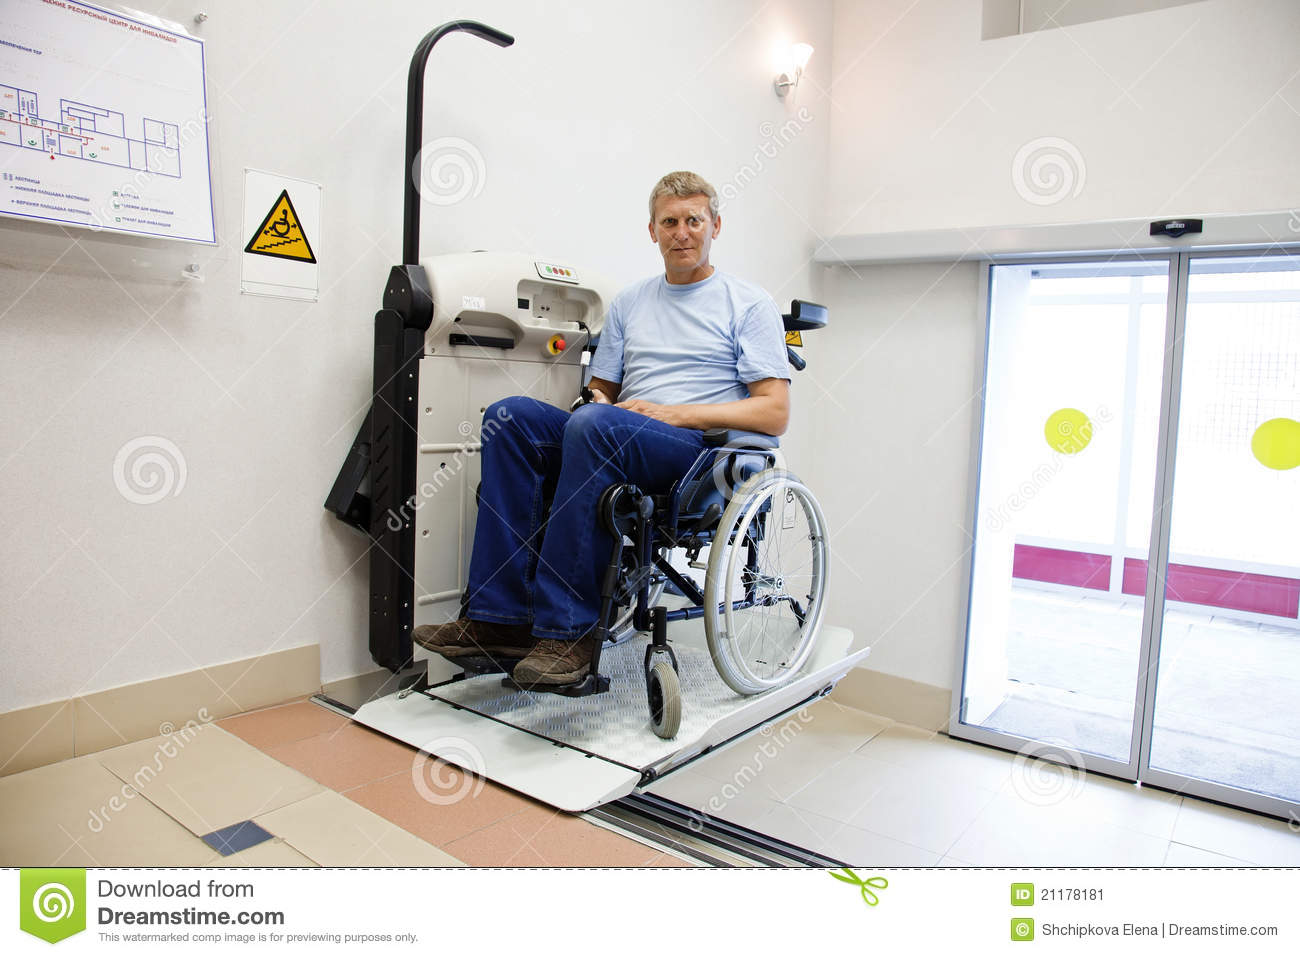 Man in an invalid chair